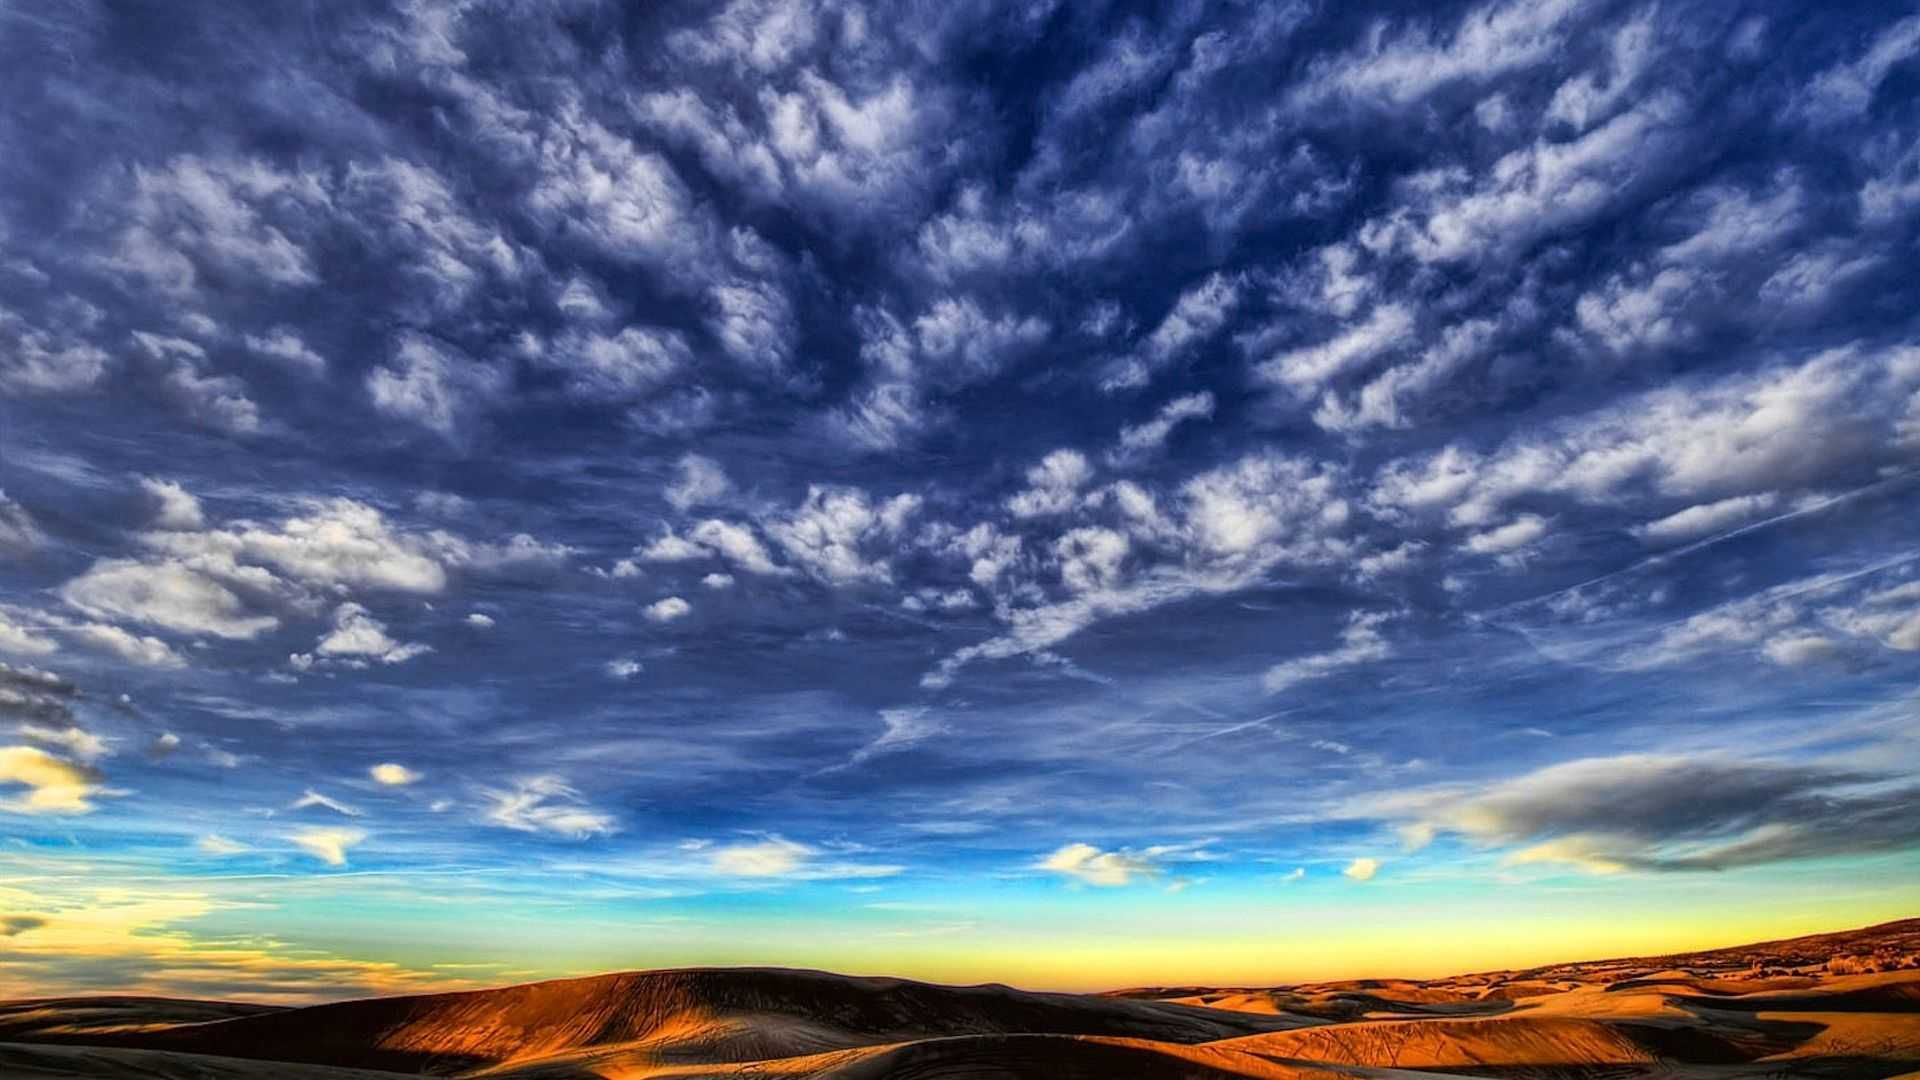 Sky full hd 1080p wallpaper